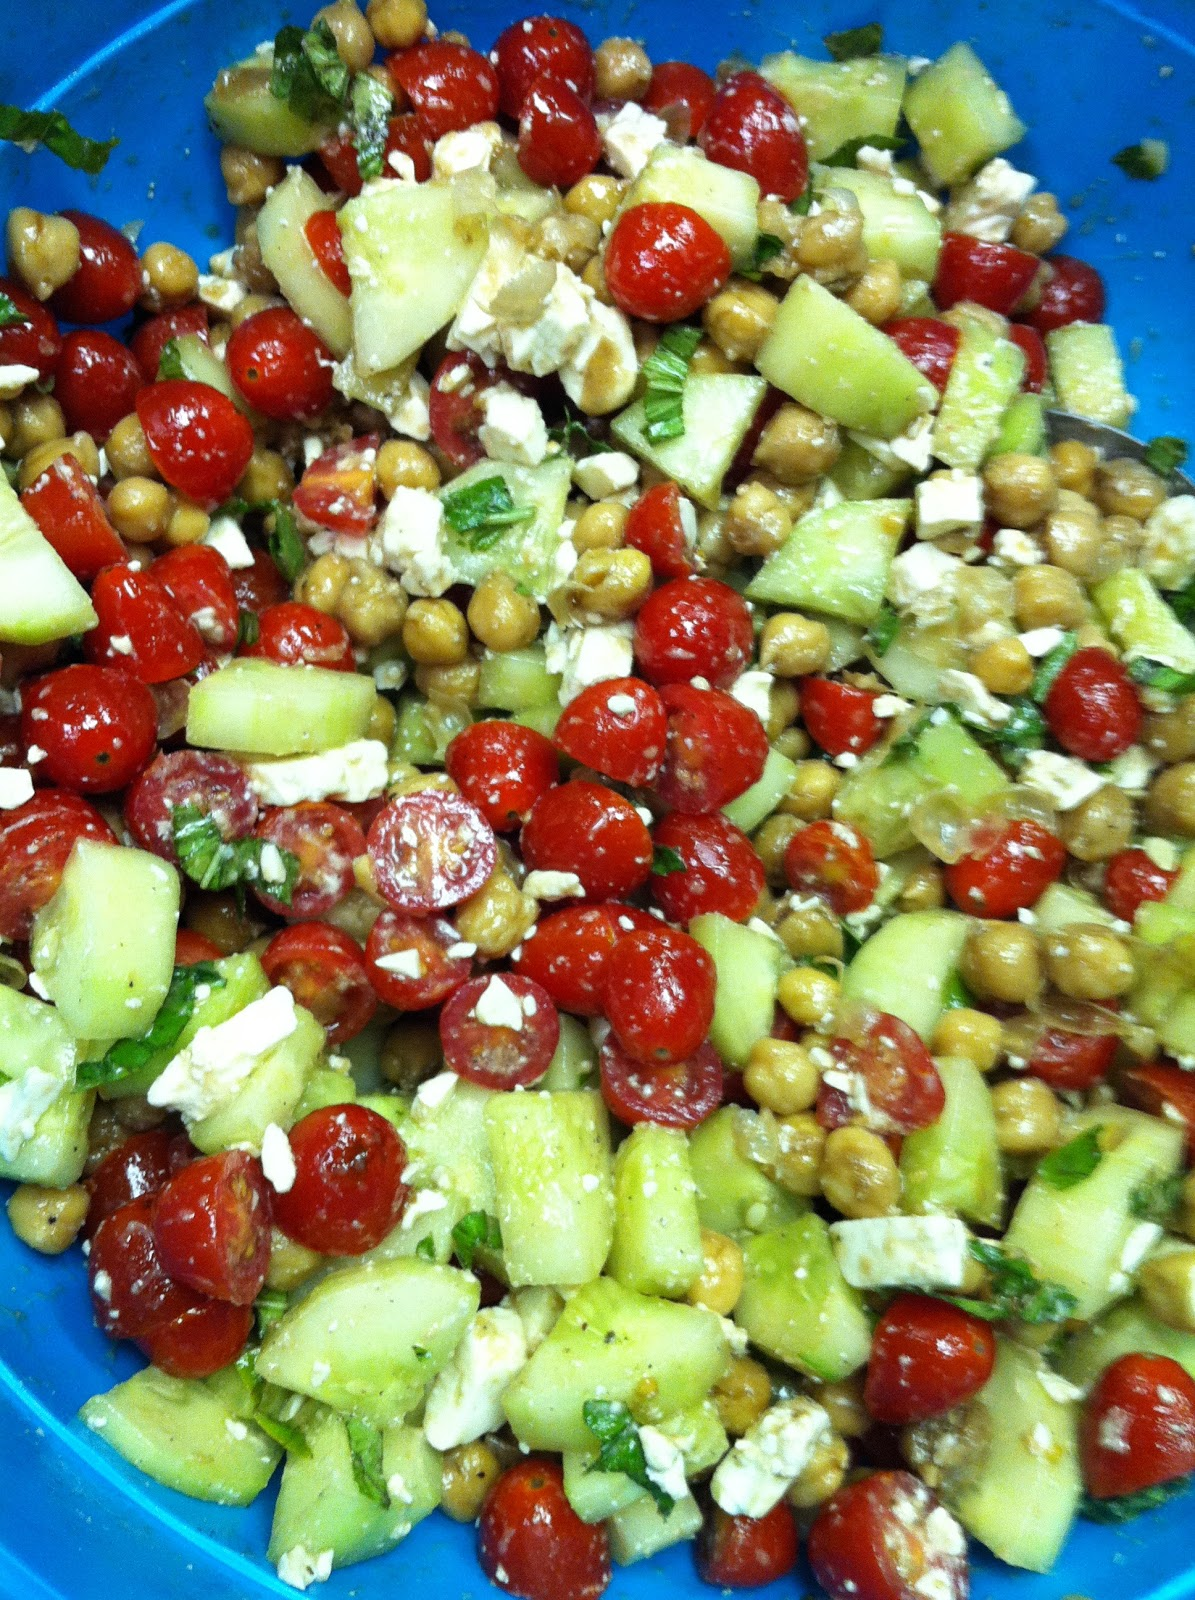 cucumber and tomato salad with cucumber and tomato salad with cucumber ...